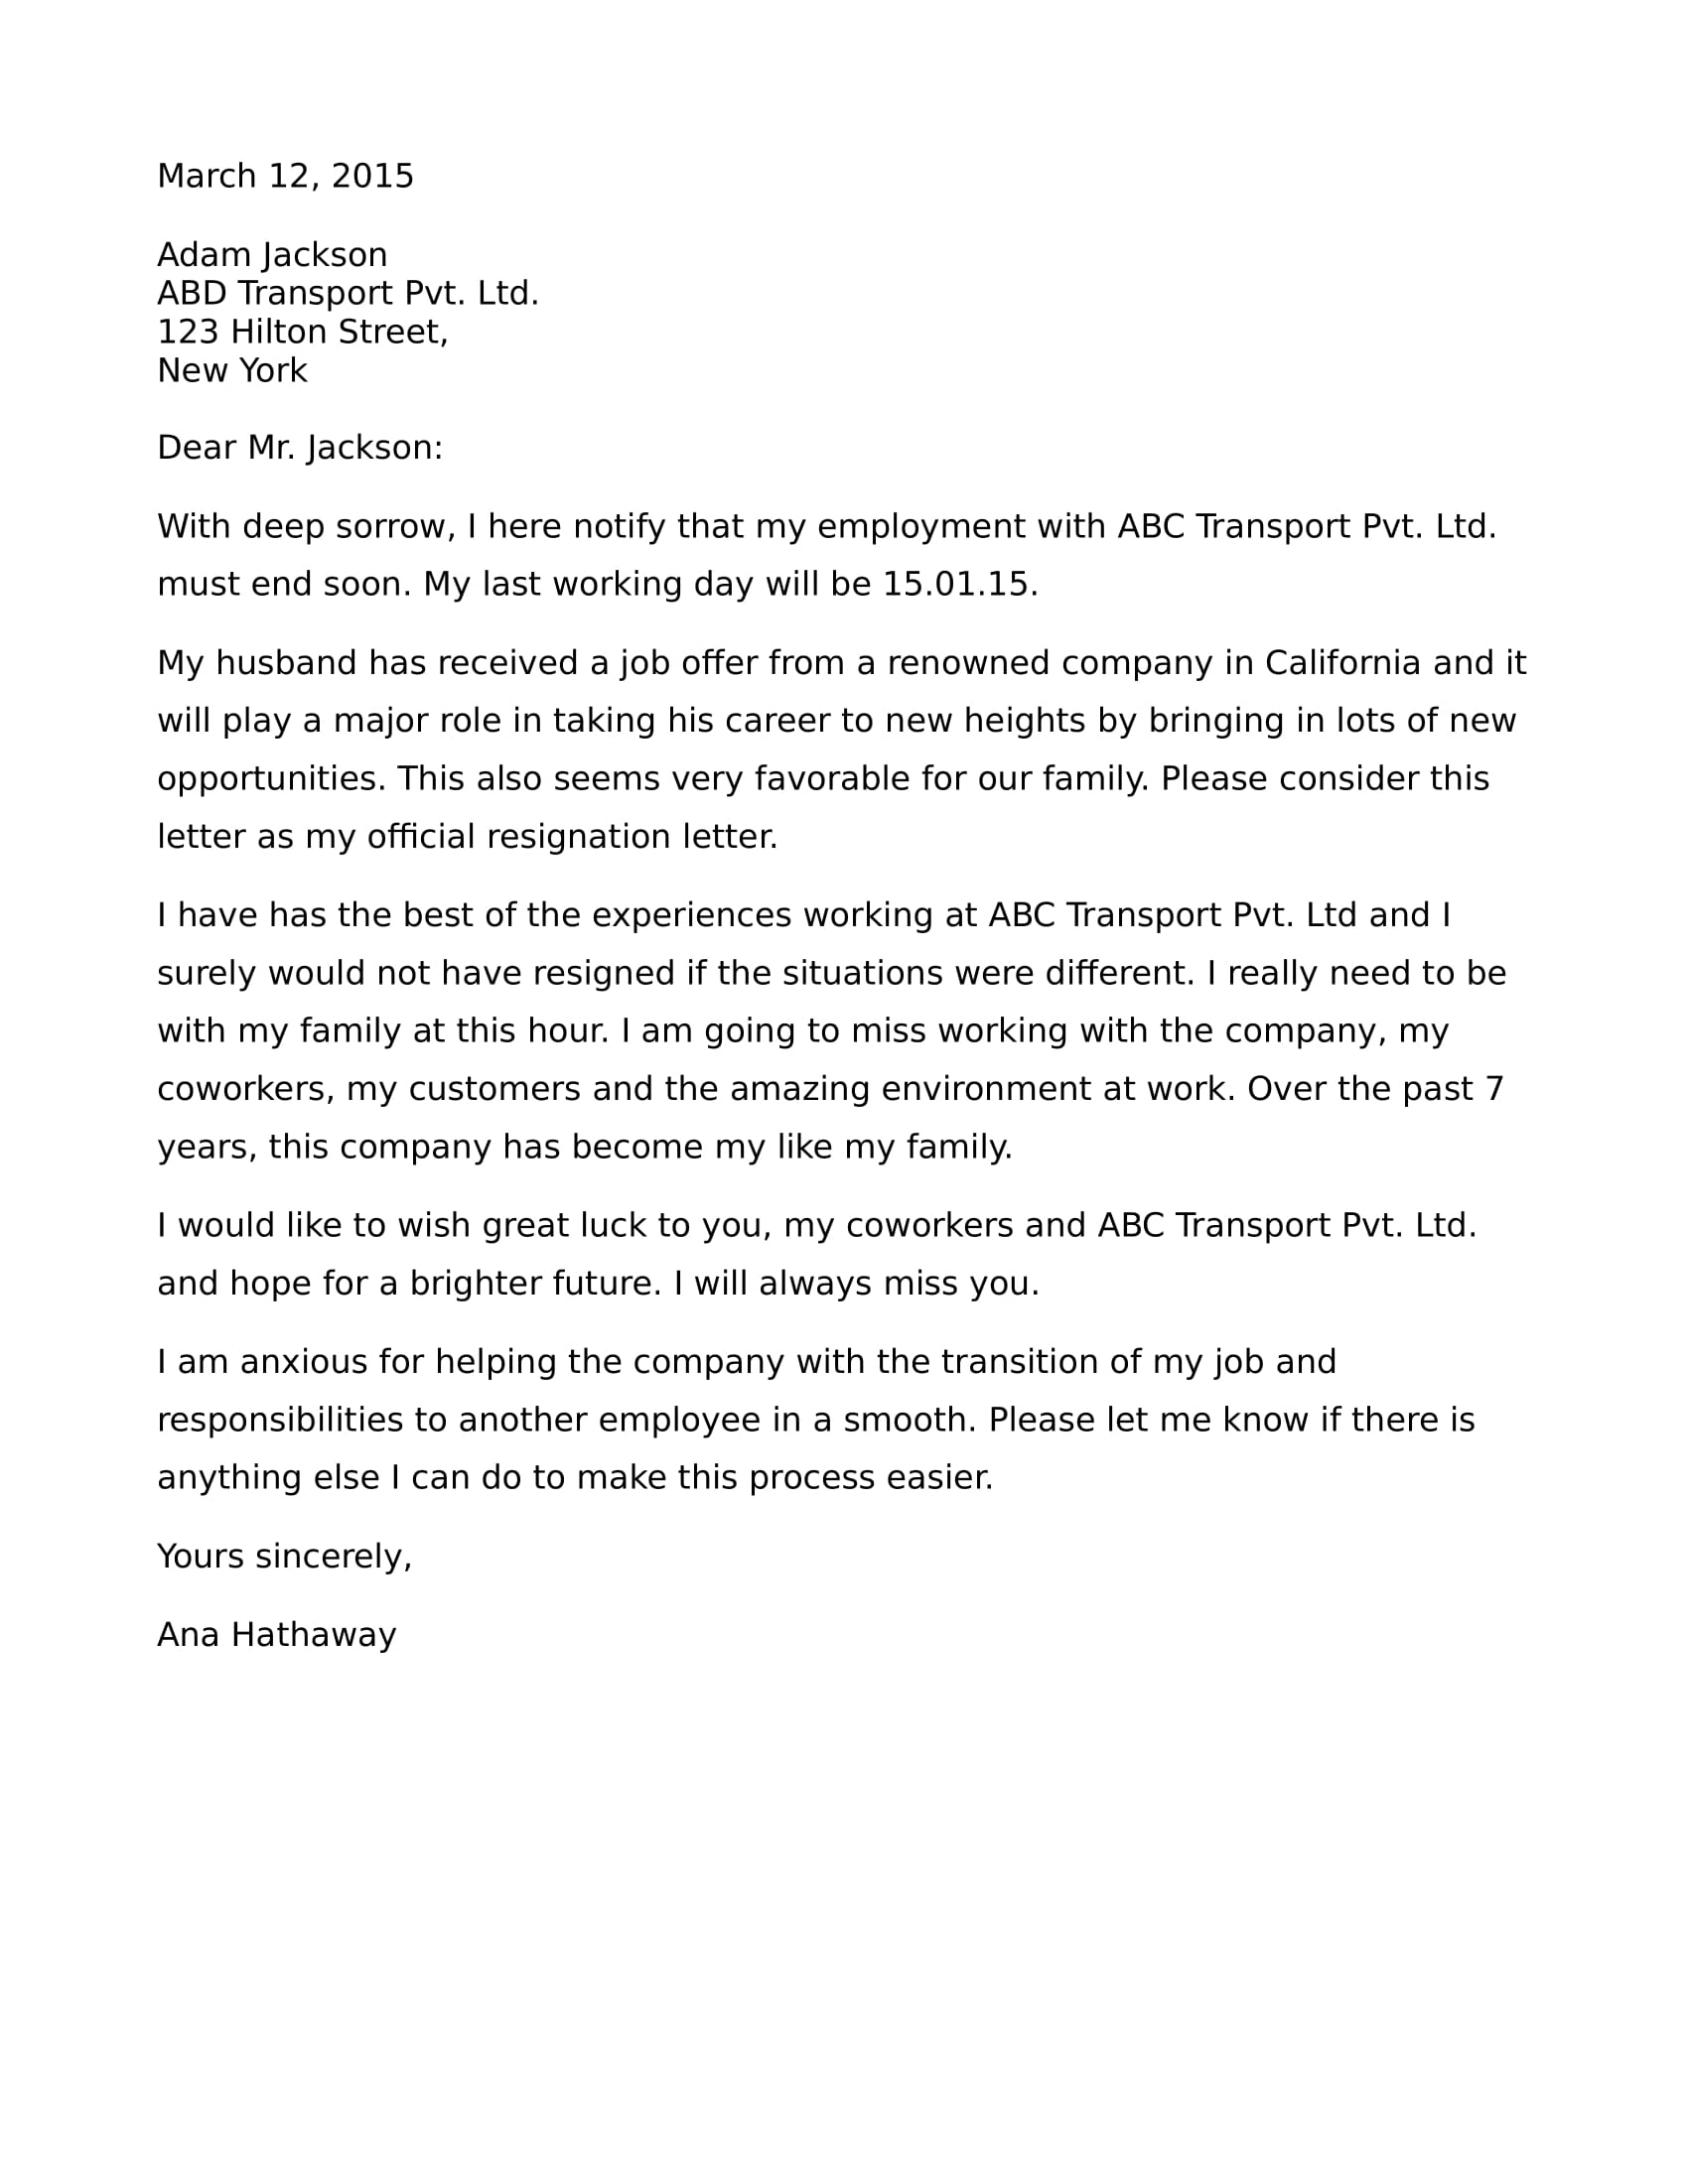 resignation letter due to relocation of spouse example